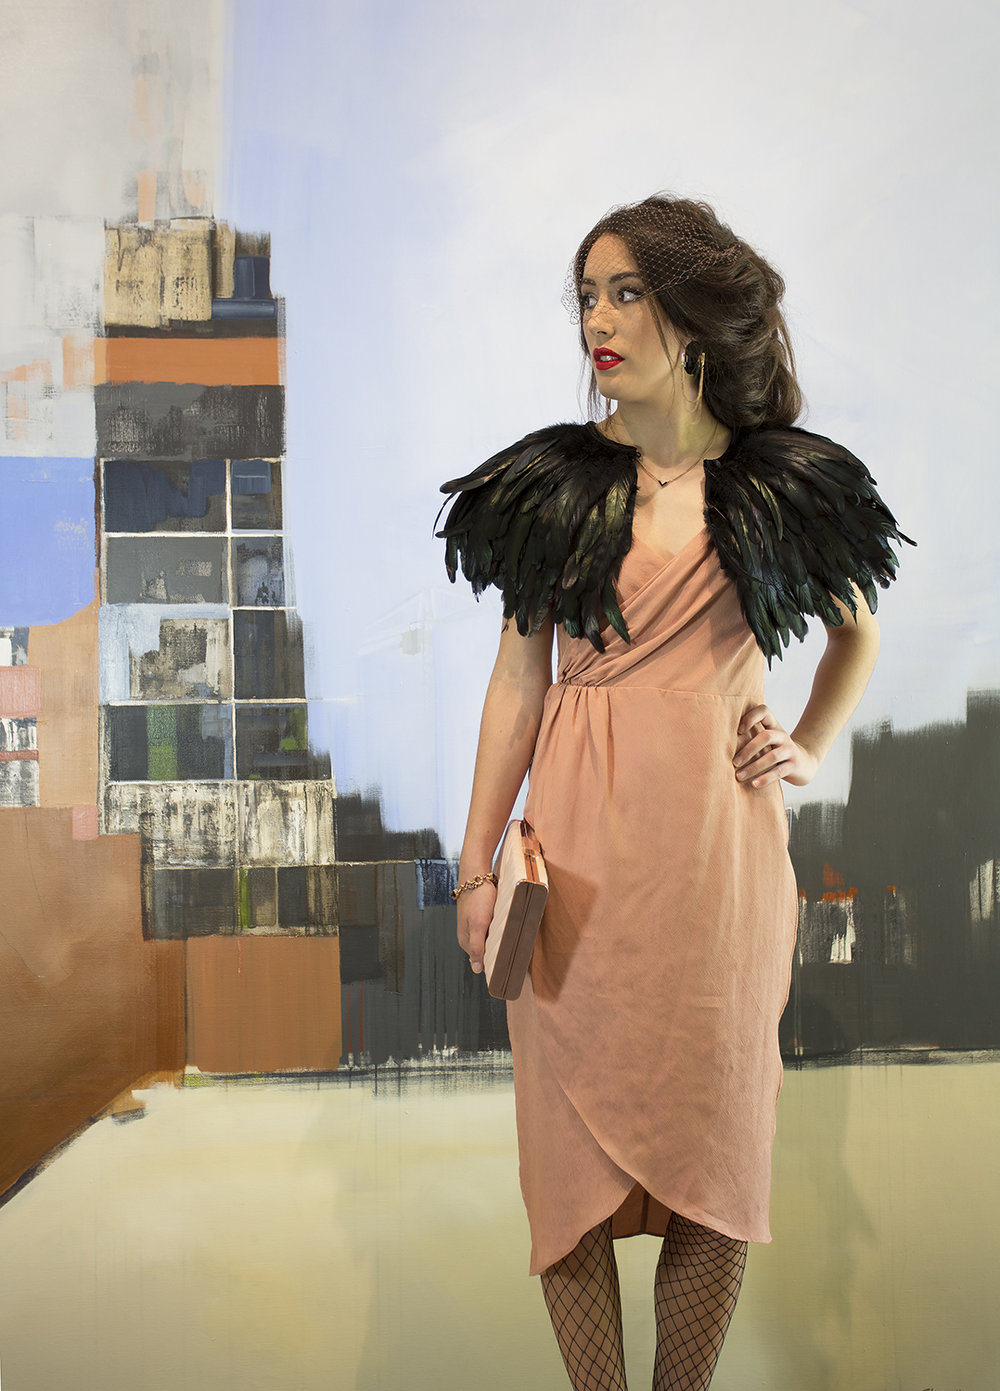 Dress, clutch and jewellery from Shine. Feathered cape from Dotti. Hosiery and hair netting, stylist's own.  Artwork by Lisa Chandler, We often lose today, because there has been a yesterday and tomorrow is coming, 2016, acrylic on linen. Courtesy of the artist.